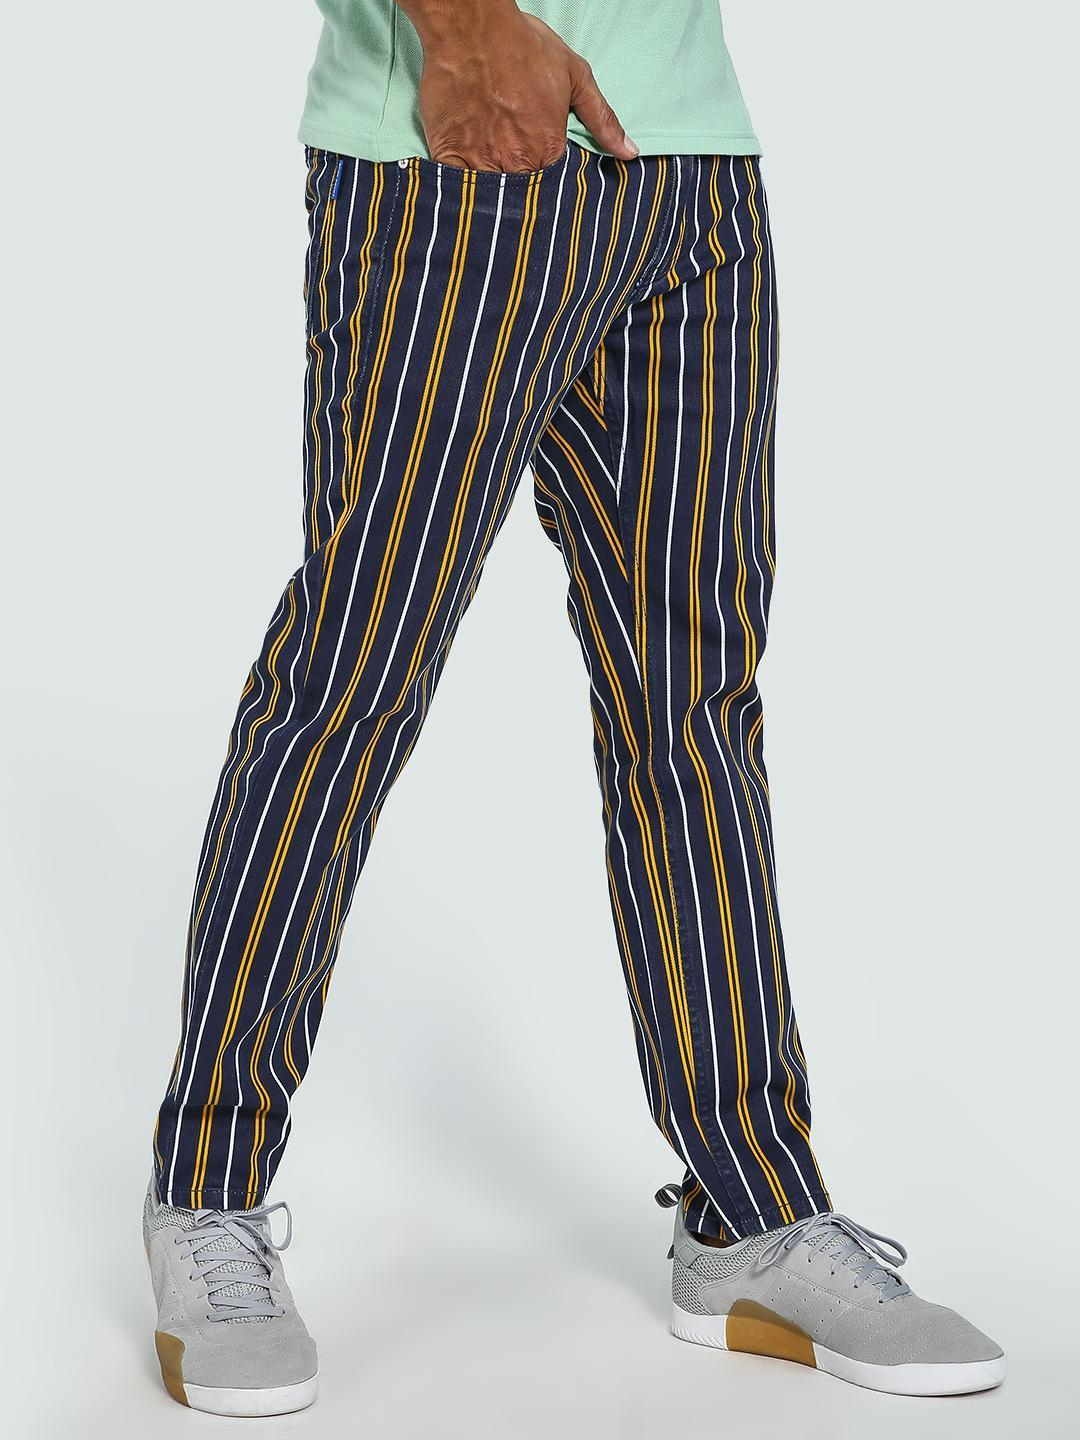 Blue Saint NAVY/YELLOW Contrast Vertical Stripe Trousers 1